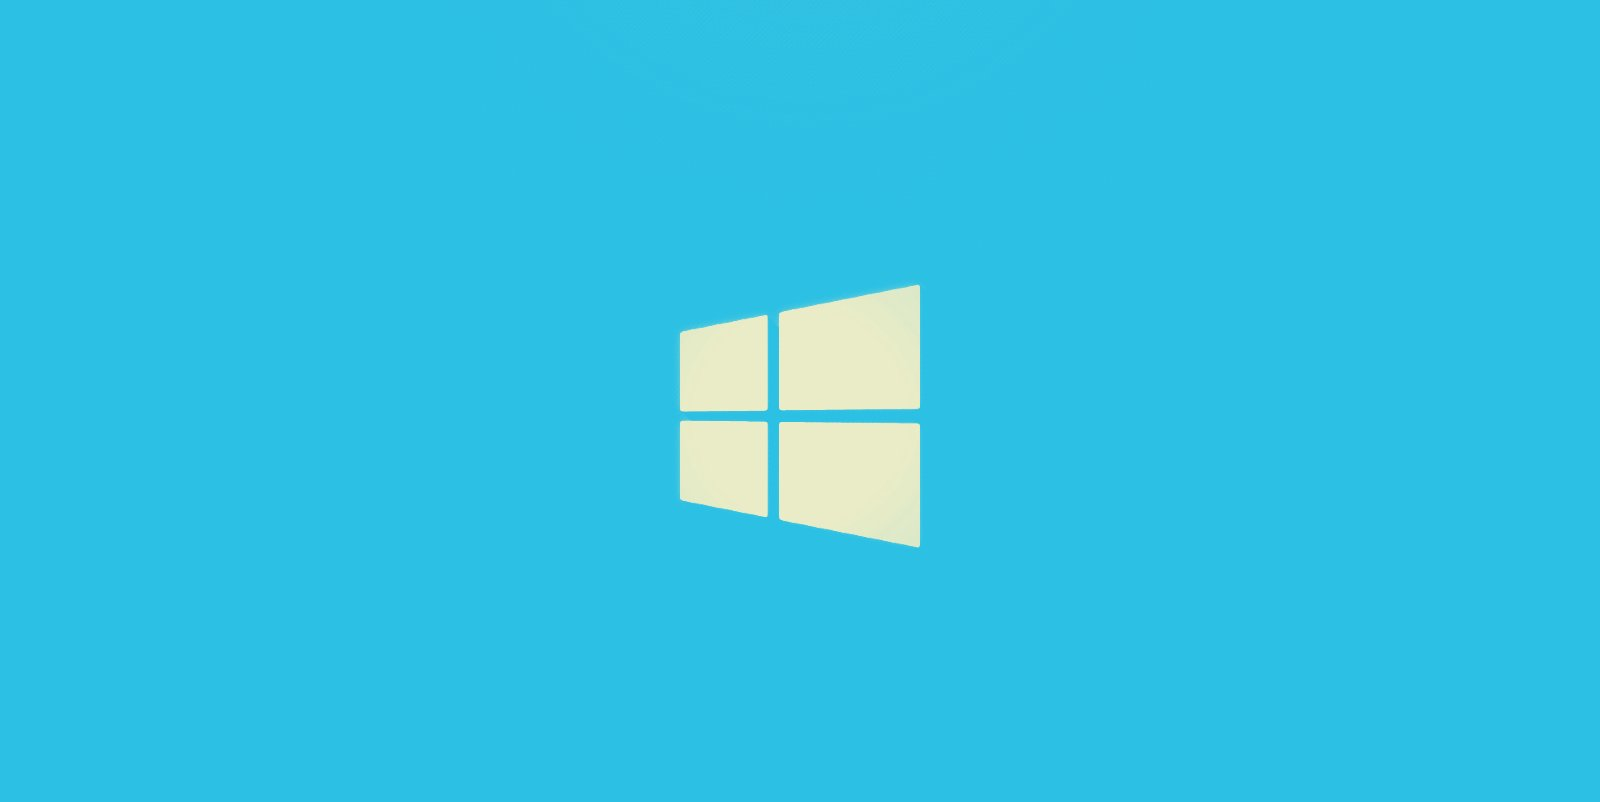 Microsoft announces Windows Server 2022 with new security features